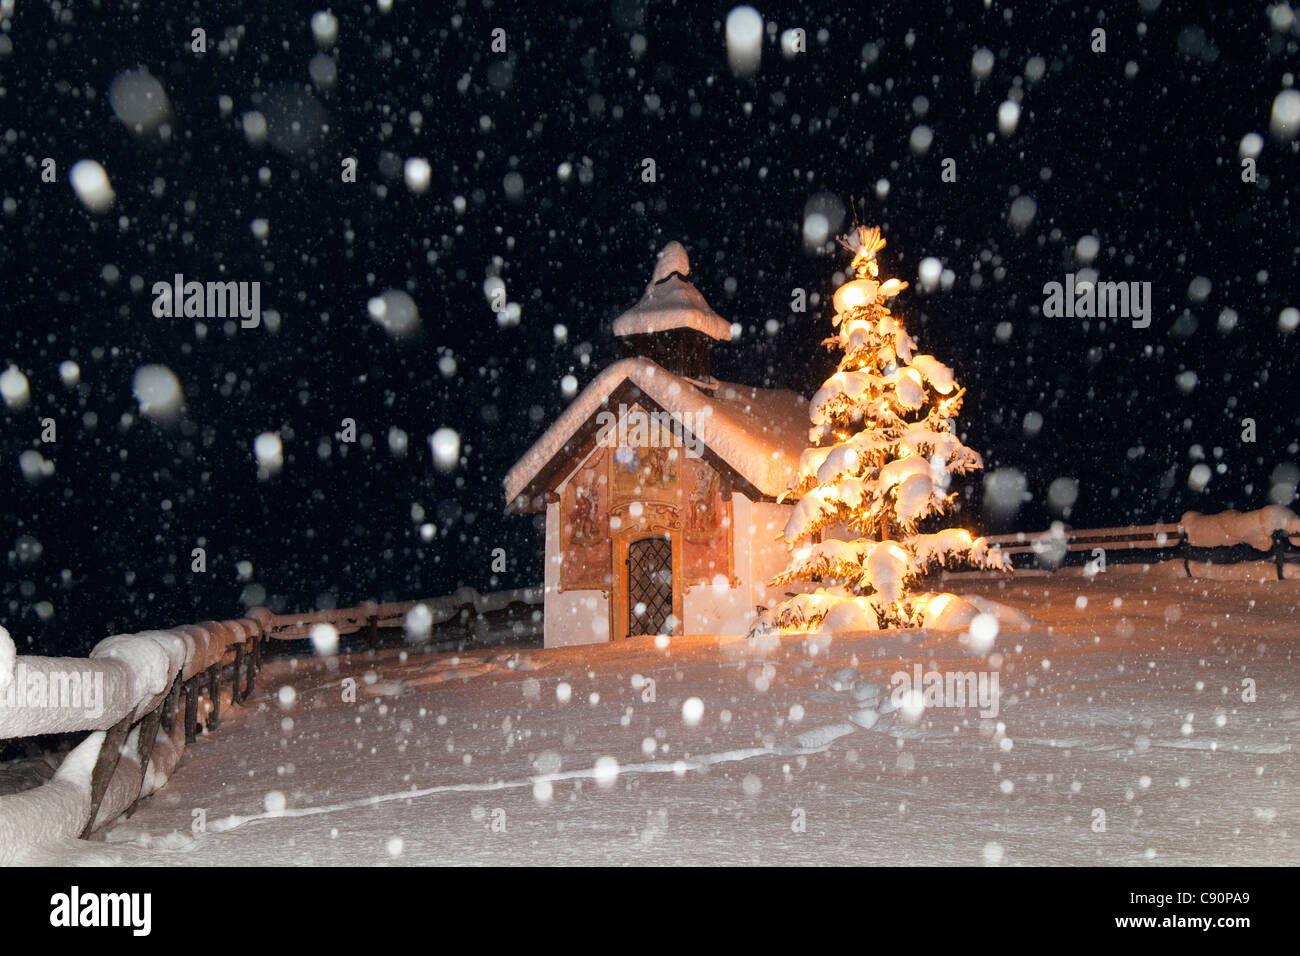 snowfall stockfotos snowfall bilder alamy. Black Bedroom Furniture Sets. Home Design Ideas